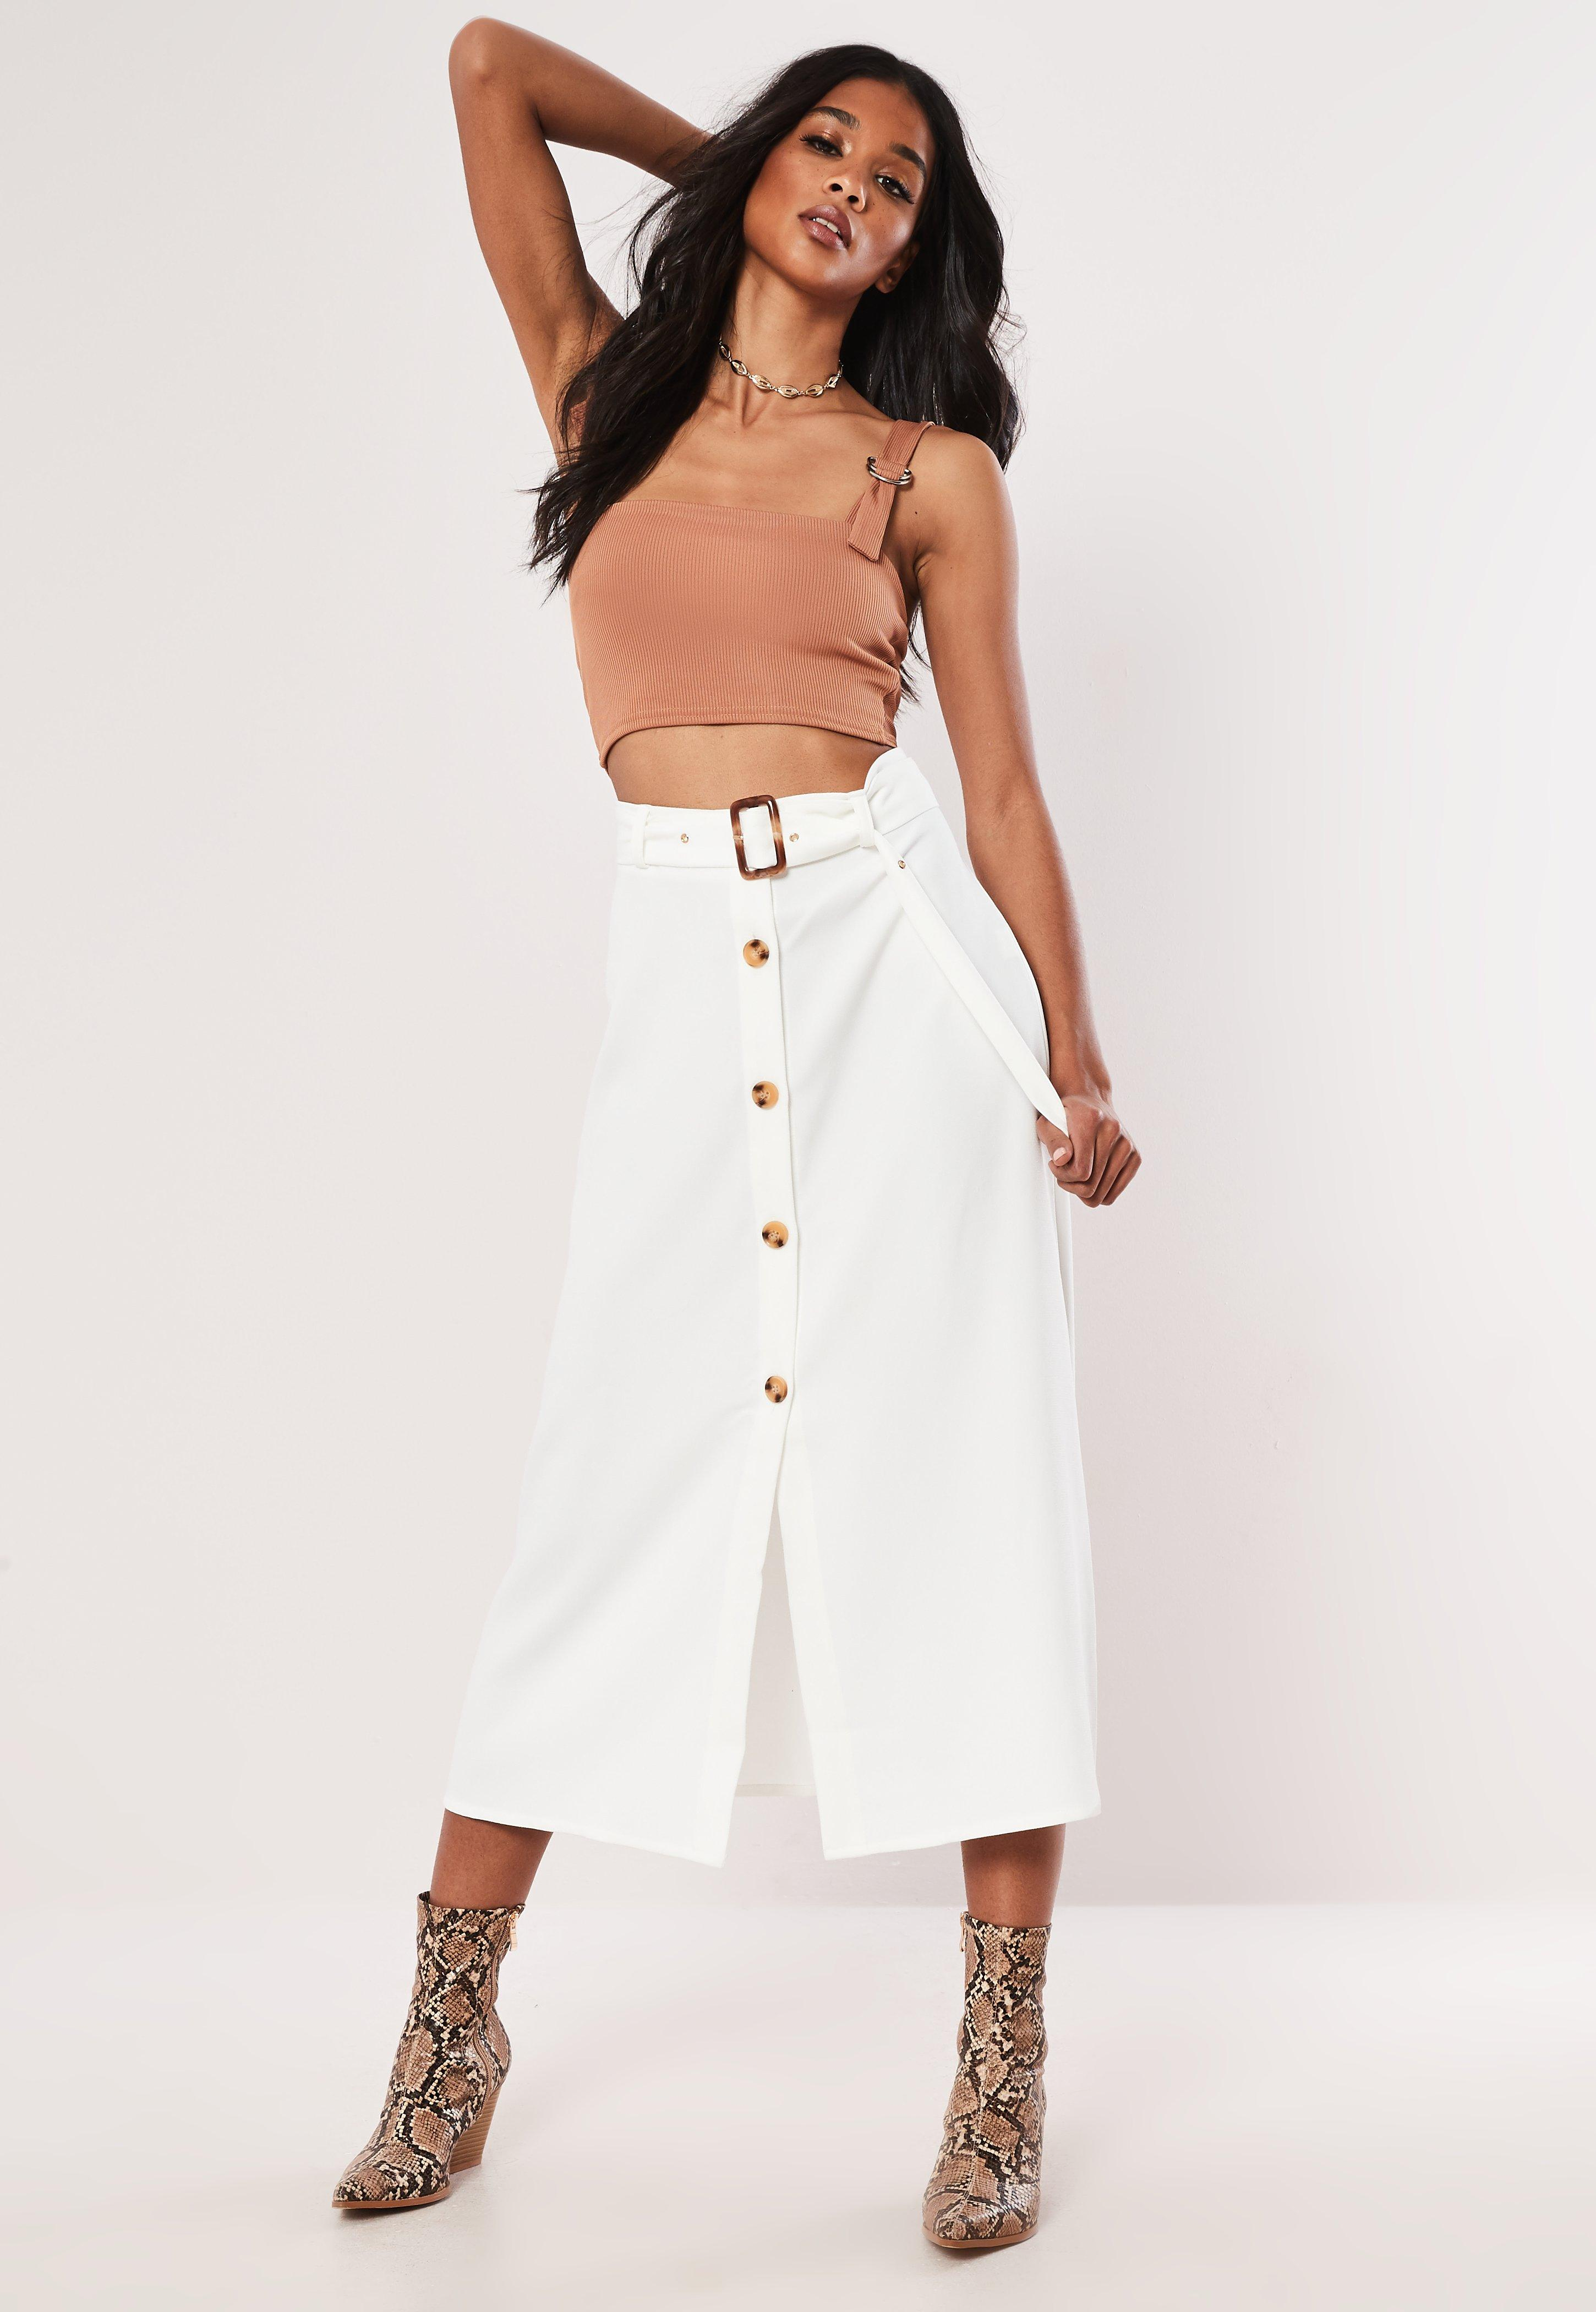 7aaa2f3a44 Midi Skirts | Full & Fitted Midi Skirts - Missguided Ireland